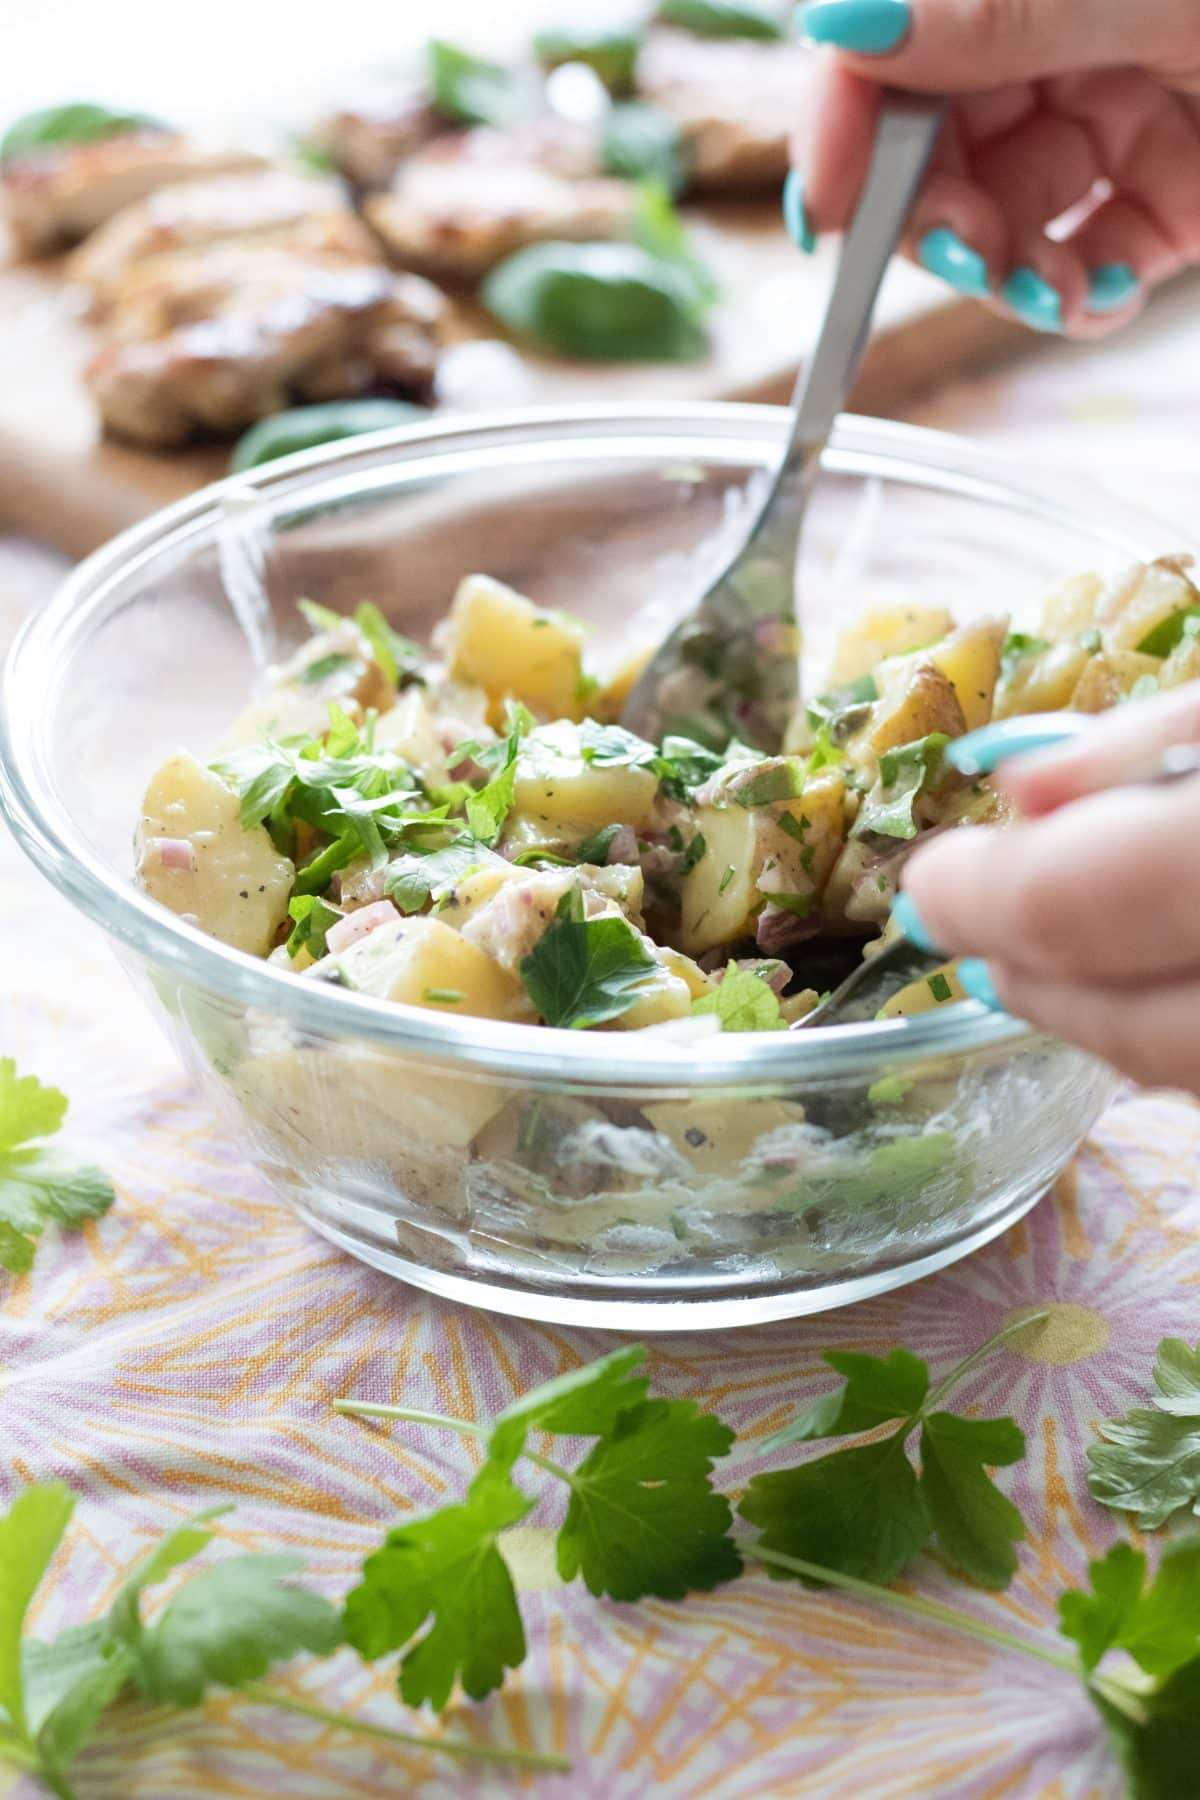 mixing together a potato salad with a knife and spoon